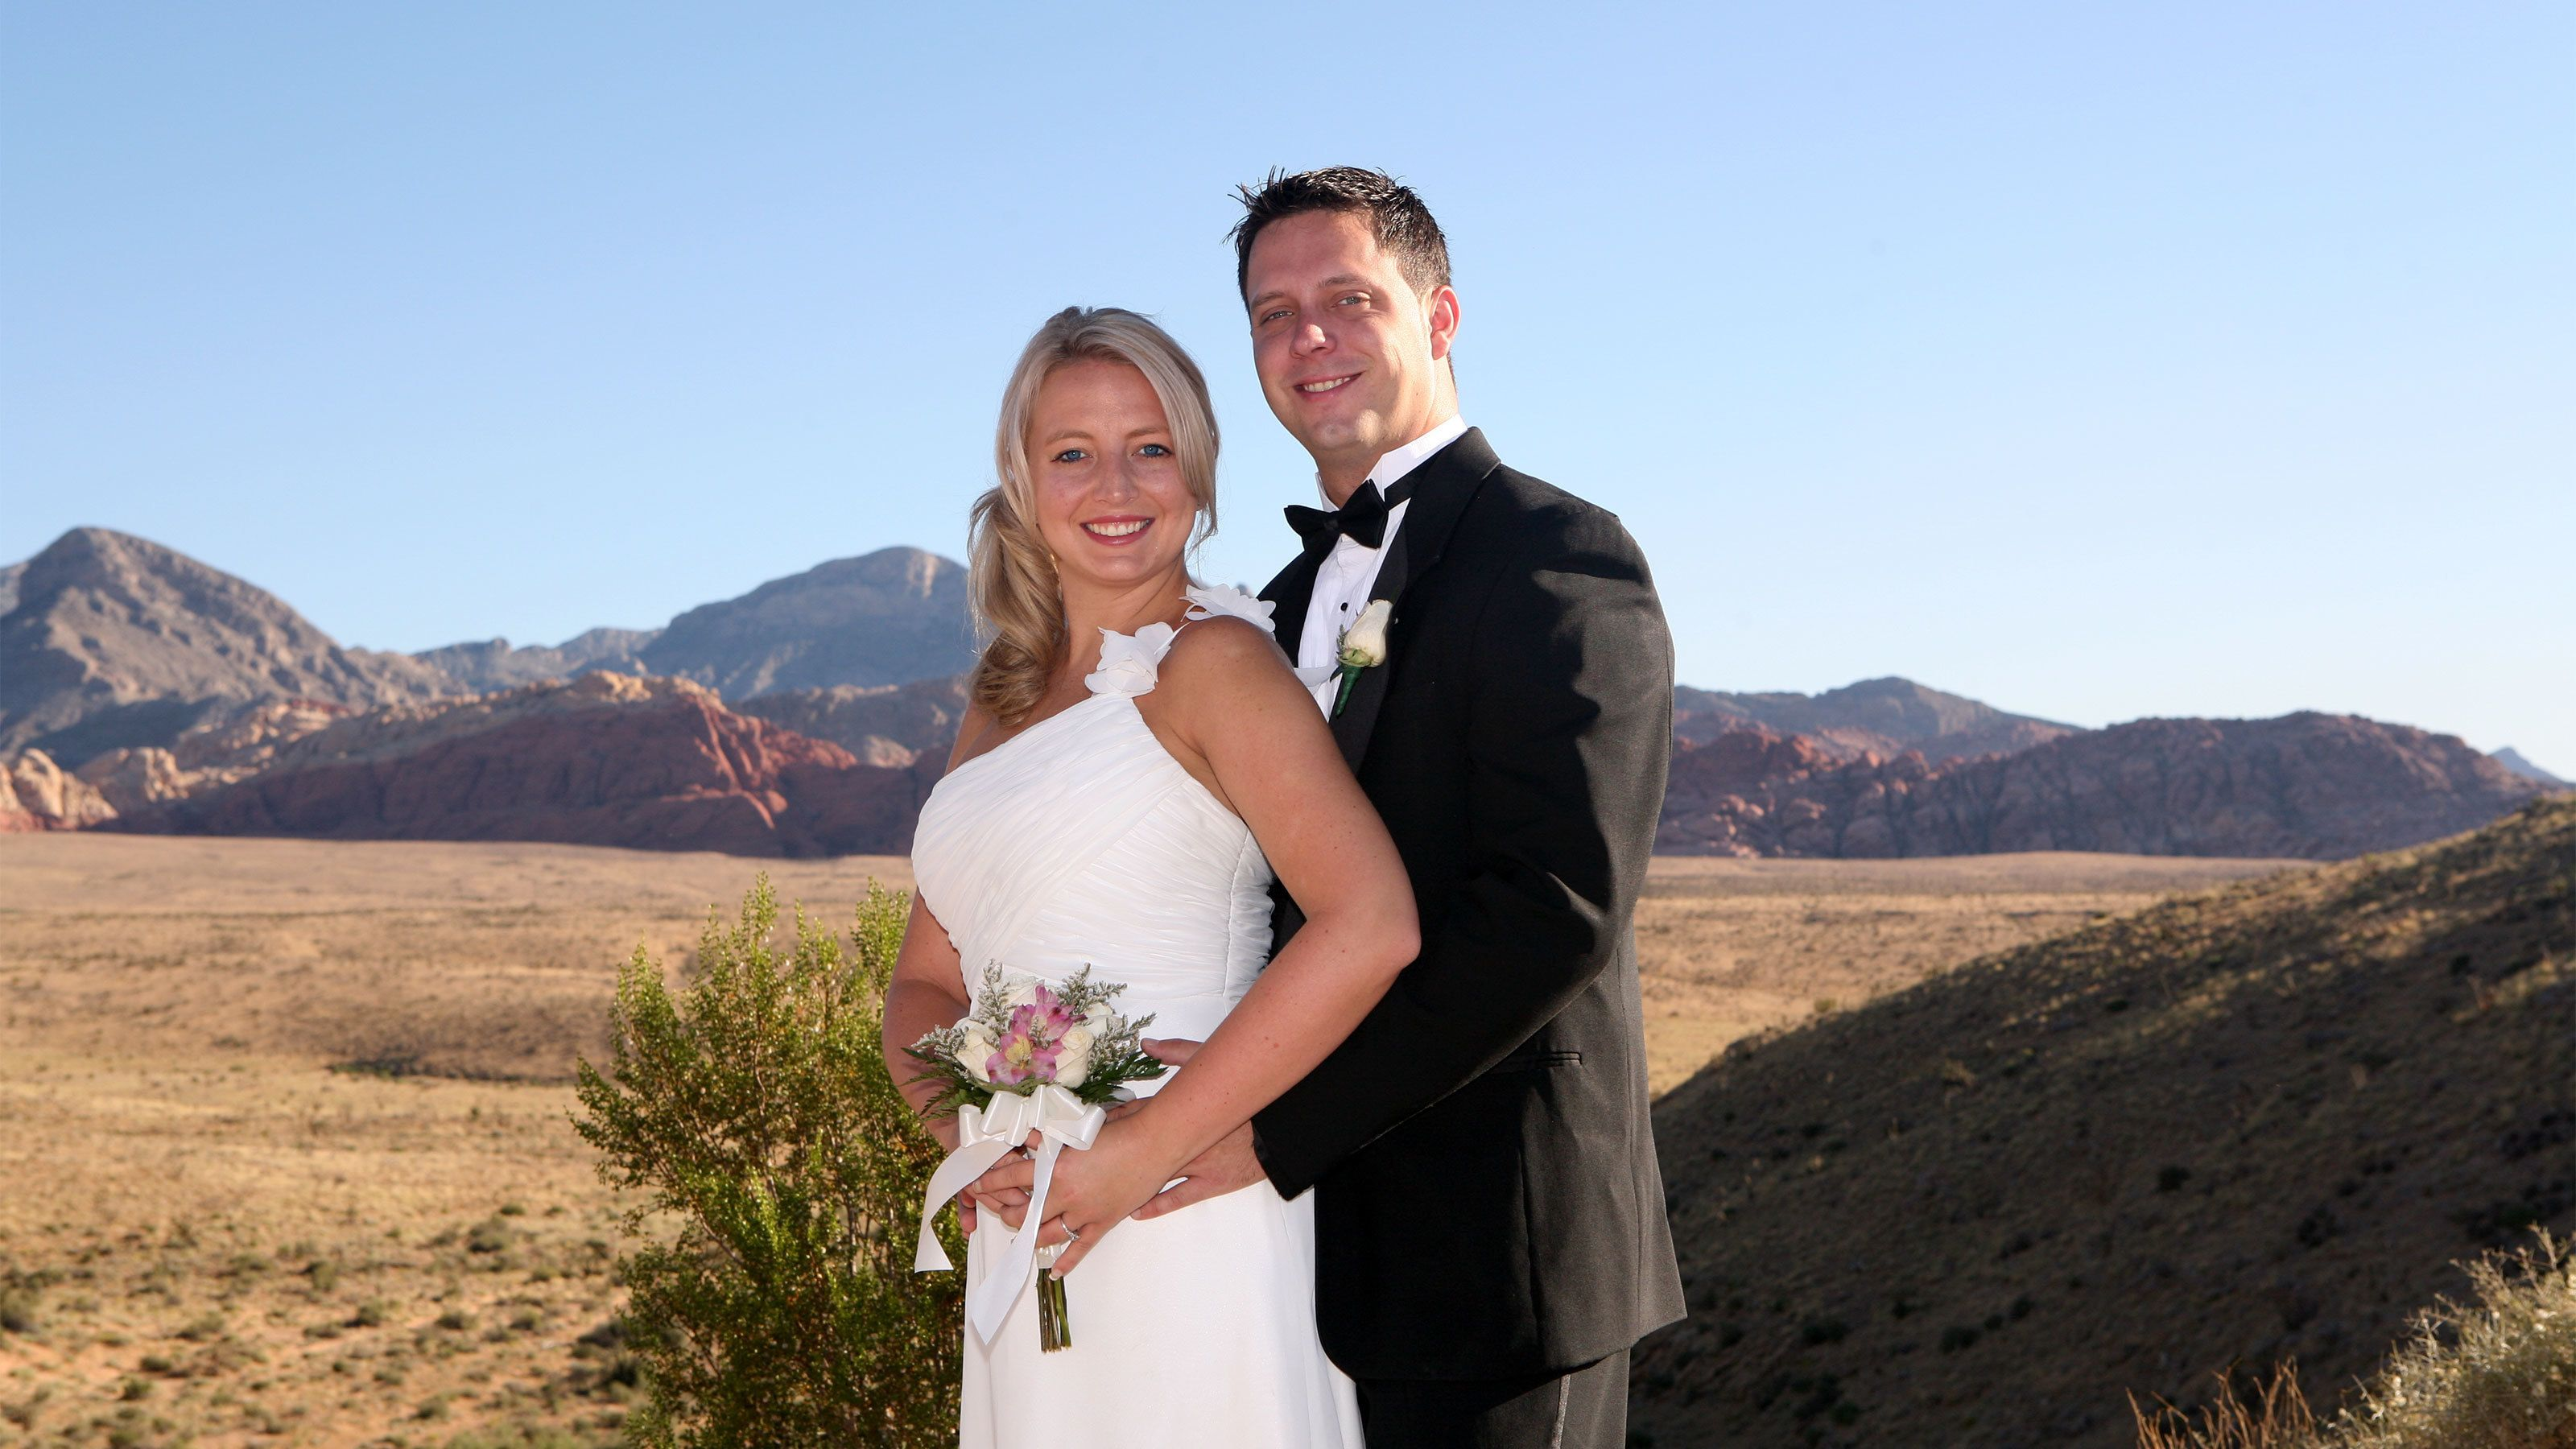 Lovely bride and groom pose for a photo with the Red Rock Canyon in the background